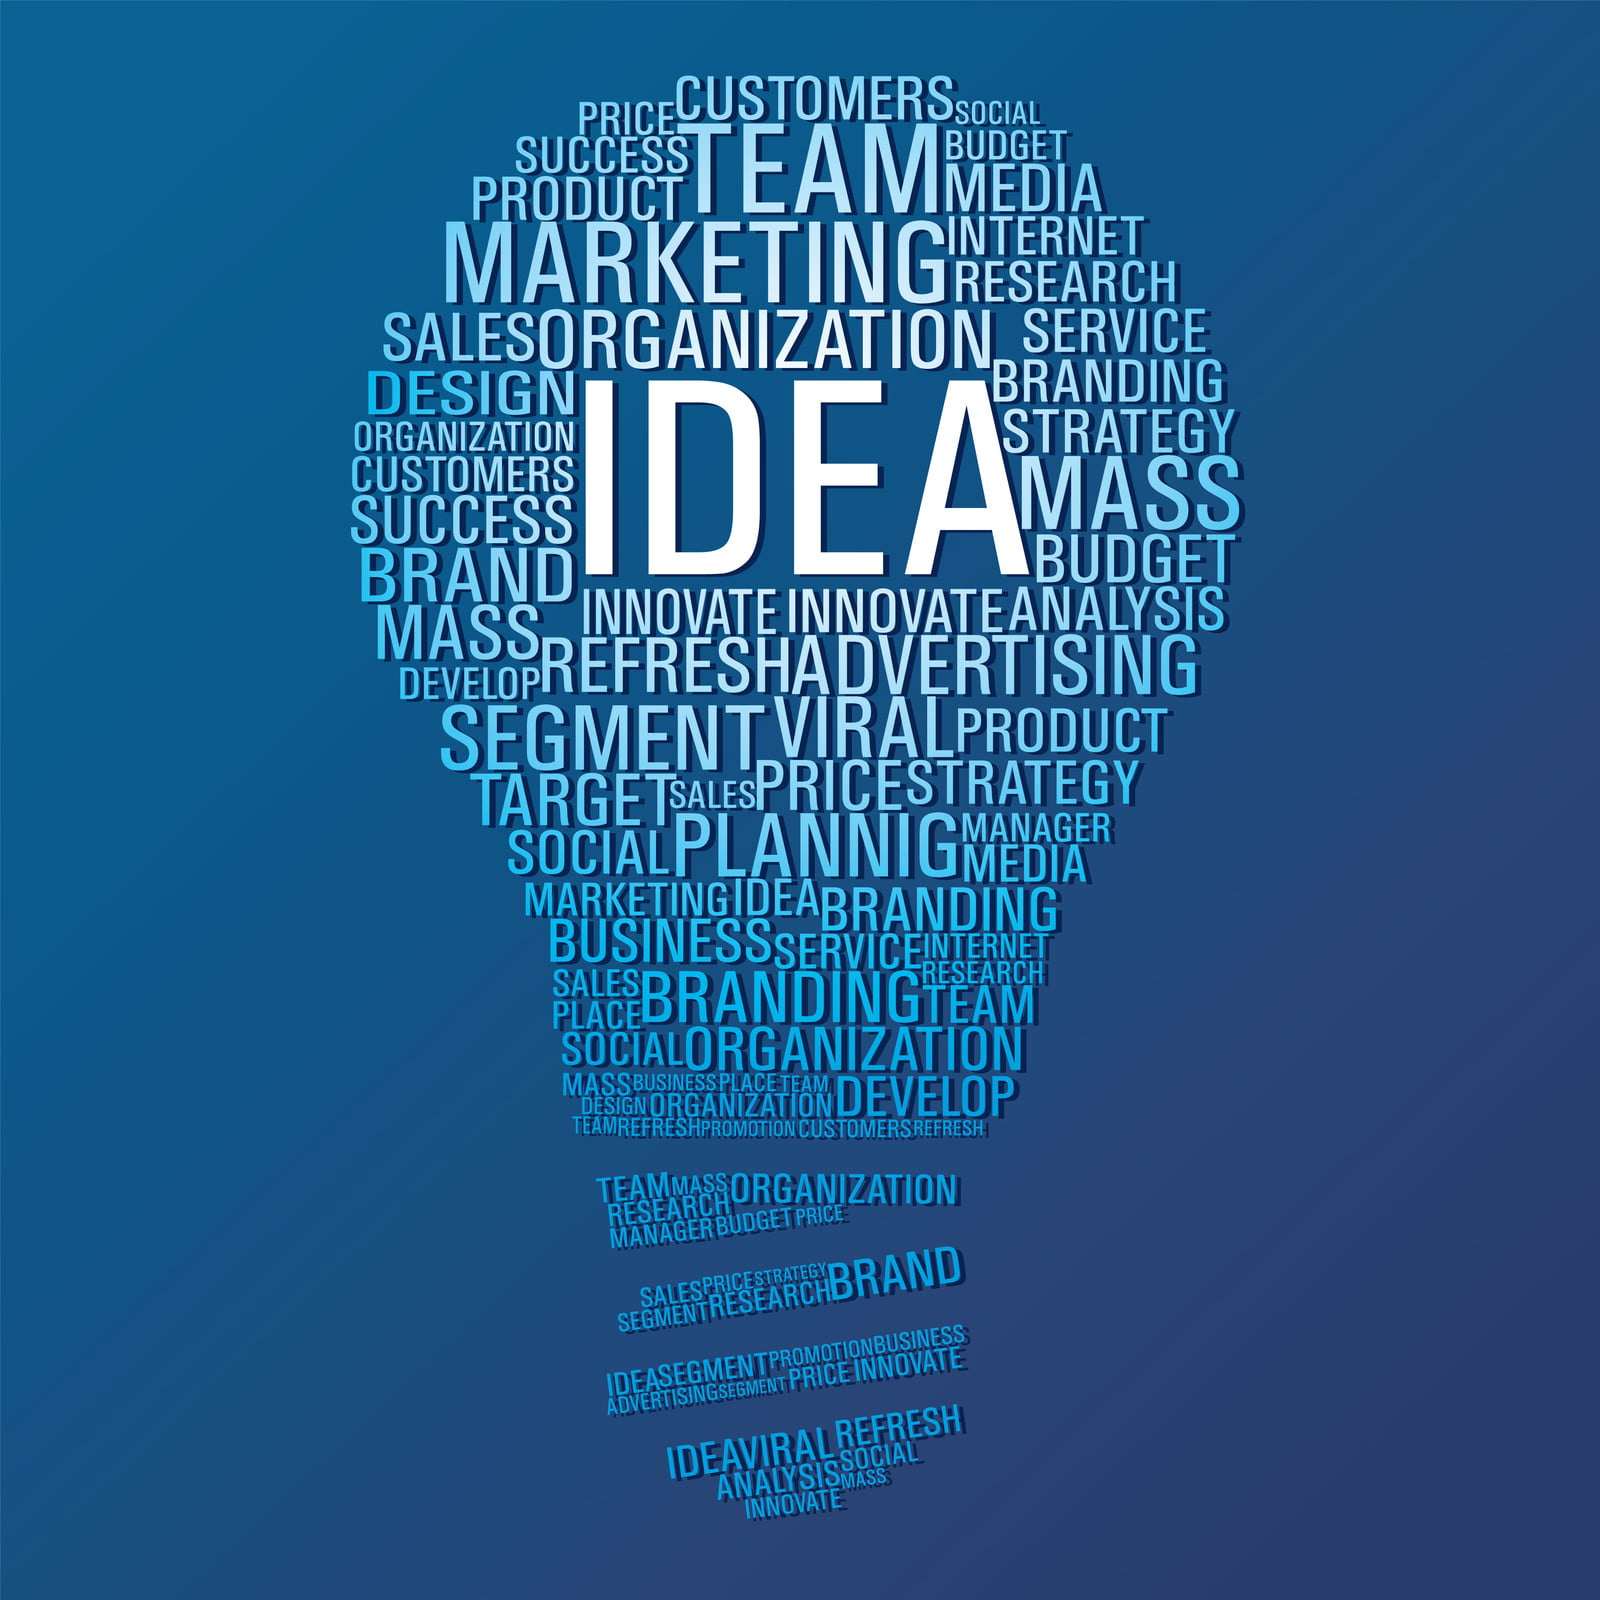 6 Marketing Ideas